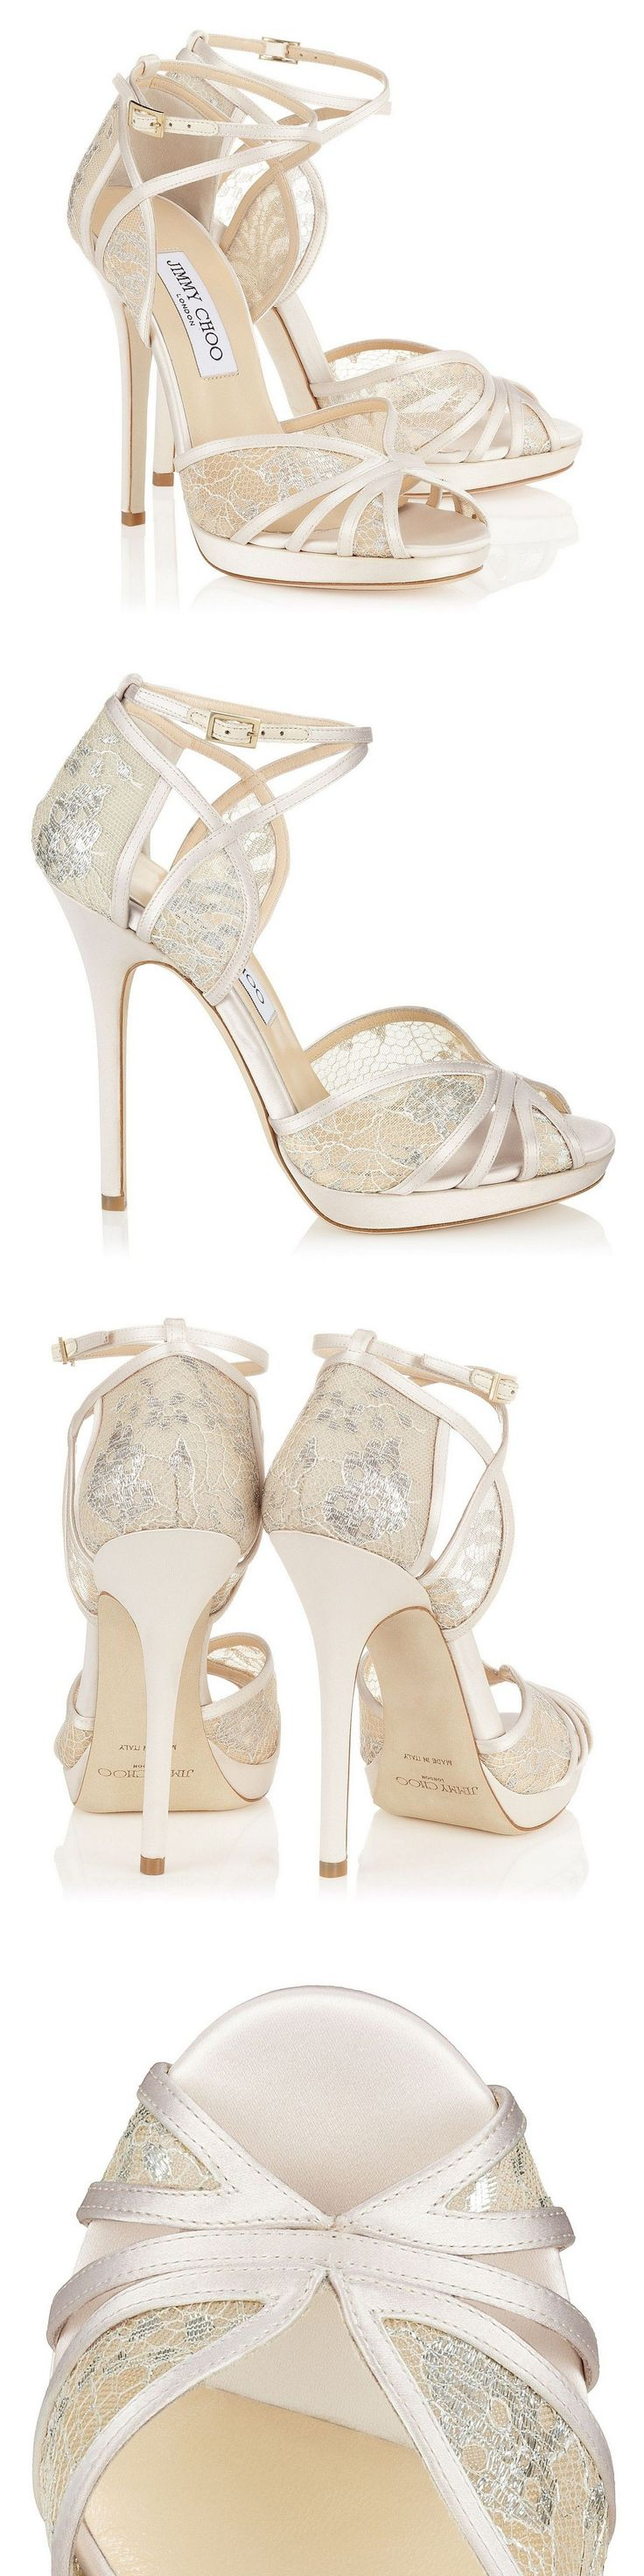 """Jimmy Choo """"FAYME"""" Ivory and White Satin Sandals"""